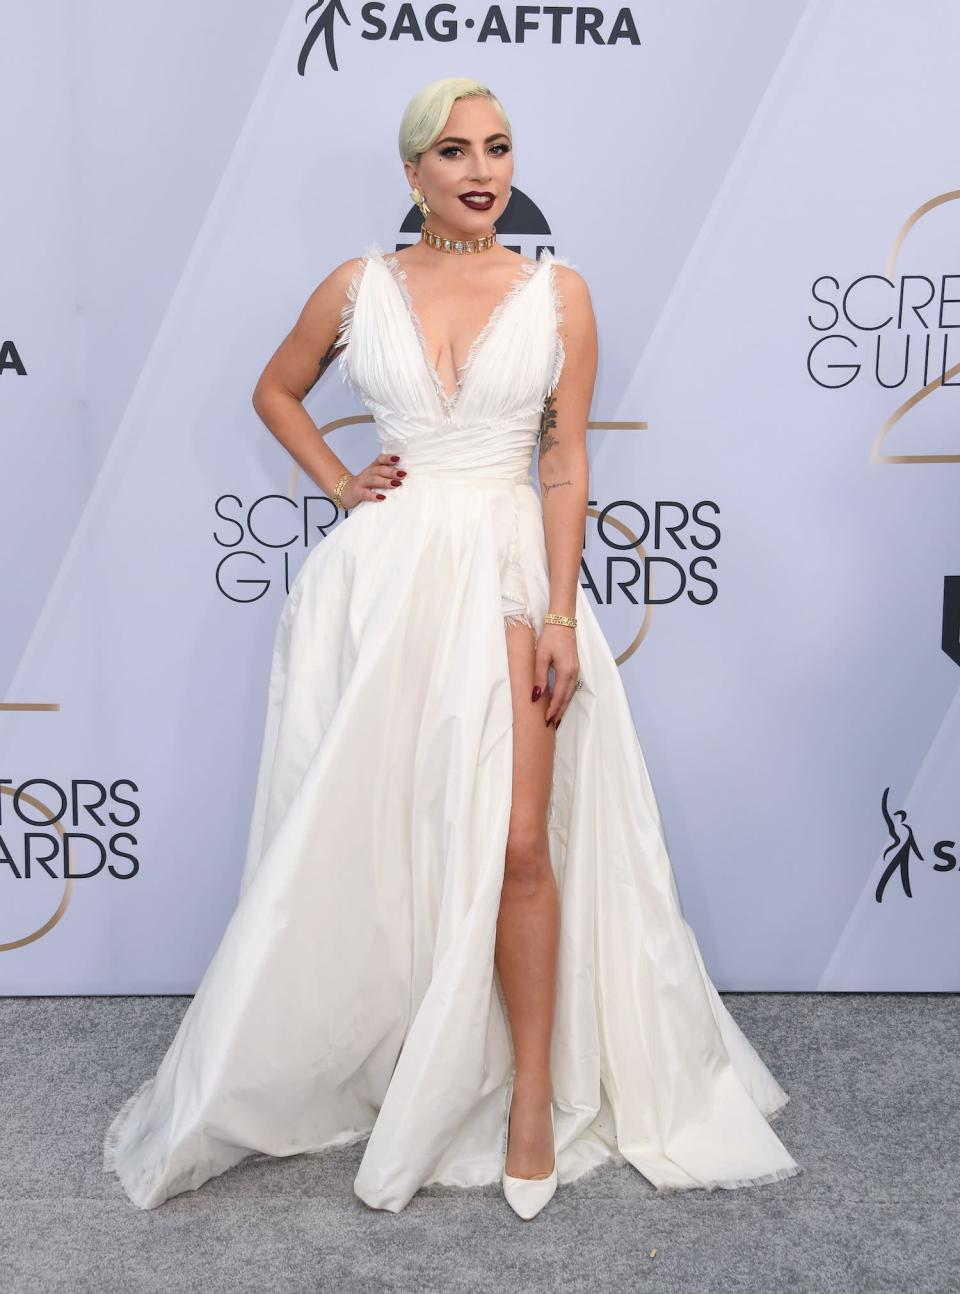 """<p>Lady Gaga's white Dior Couture look for the 2019 Screen Actors Guild Awards is fresh off the runway, as the gown <a rel=""""nofollow noopener"""" href=""""https://www.vogue.com/fashion-shows/spring-2019-couture/christian-dior"""" target=""""_blank"""" data-ylk=""""slk:debuted"""" class=""""link rapid-noclick-resp"""">debuted</a> at Paris Fashion Week mere days ago. Gaga, a nominee for Outstanding Performance by a Female Actor in <em>A Star Is Born,</em> is fresh from Las Vegas, where she and Bradley Cooper <a rel=""""nofollow noopener"""" href=""""https://www.vogue.com/fashion-shows/spring-2019-couture/christian-dior"""" target=""""_blank"""" data-ylk=""""slk:performed"""" class=""""link rapid-noclick-resp"""">performed</a> """"Shallow"""" live for the first time since the film's release. (Photo: Getty Images) </p>"""